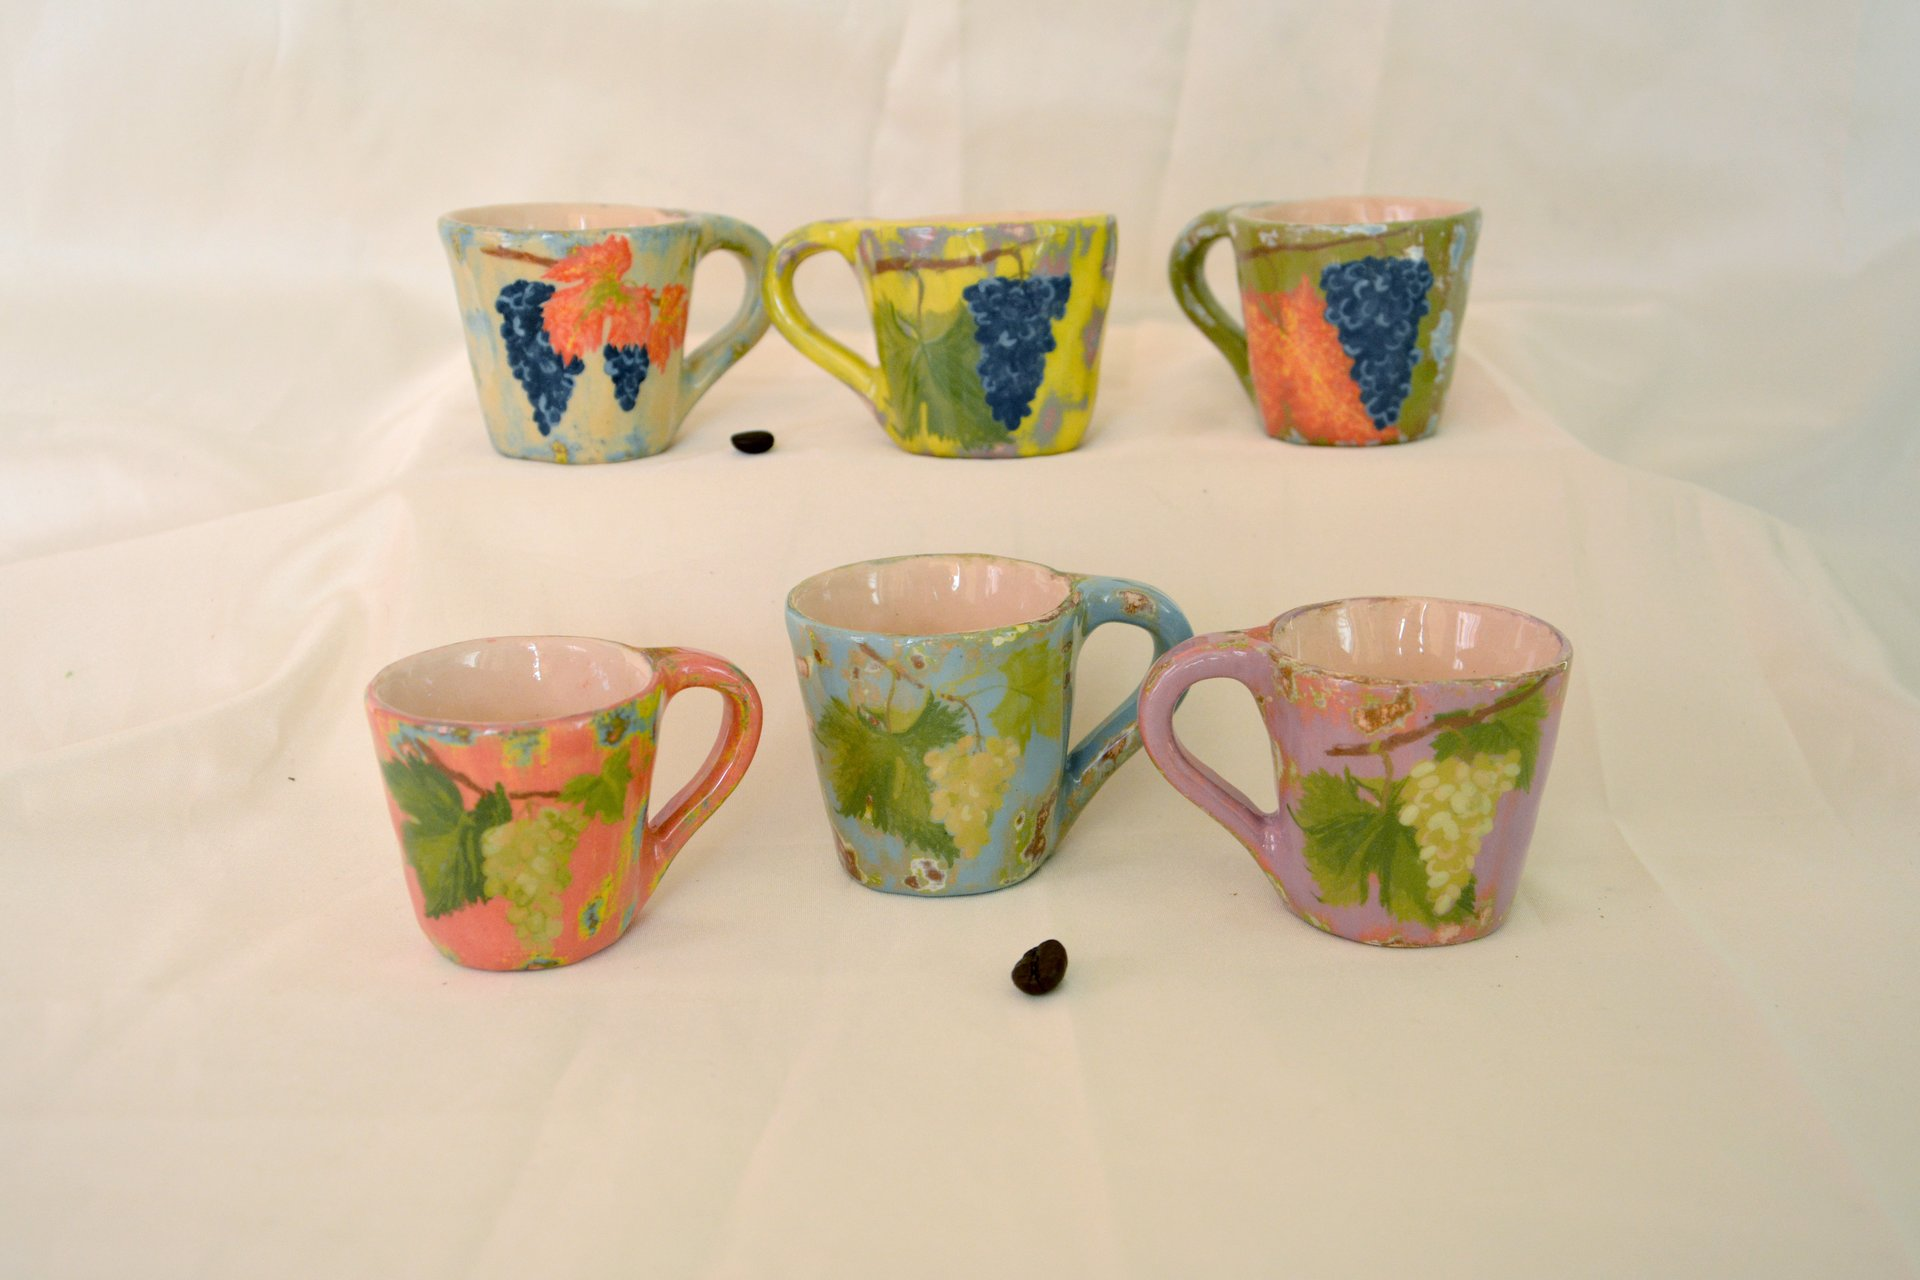 A set of coffee cups Bunch of grapes - Cups, glasses, mugs, height - 6 cm, volume - 100 ml, photo 1 of 1.